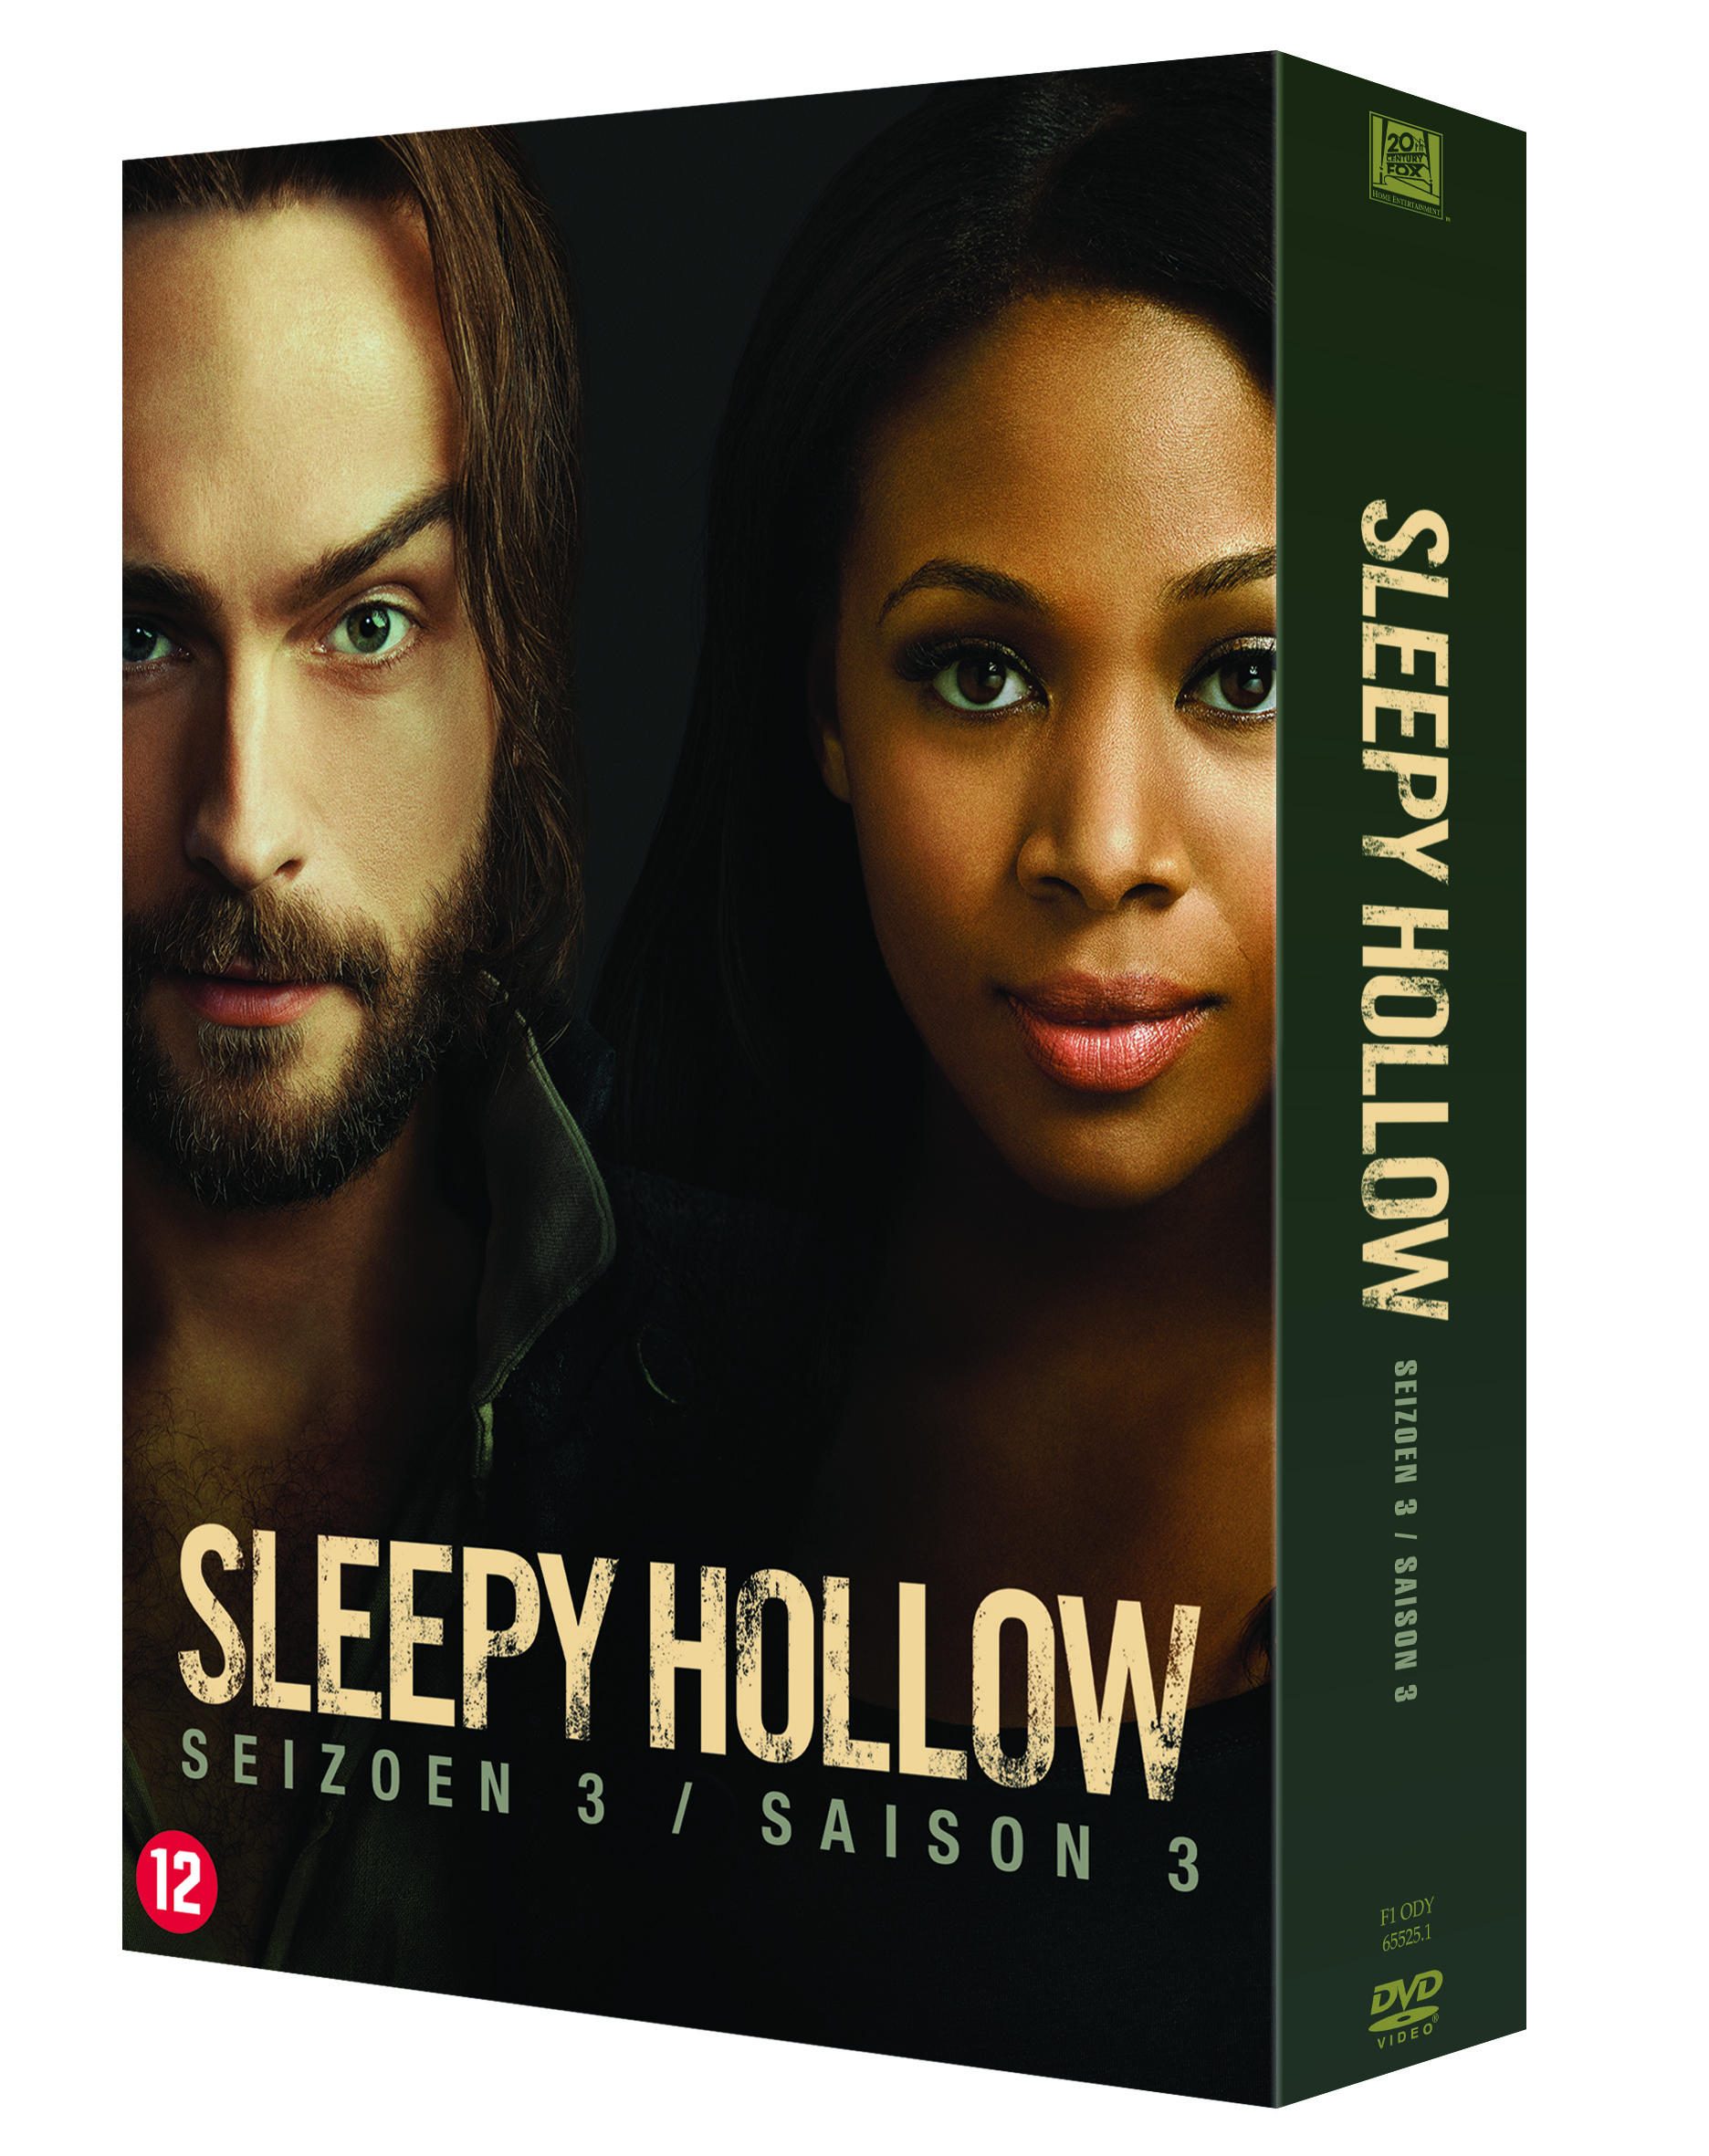 Sleepy Hollow Season 3 - DVD